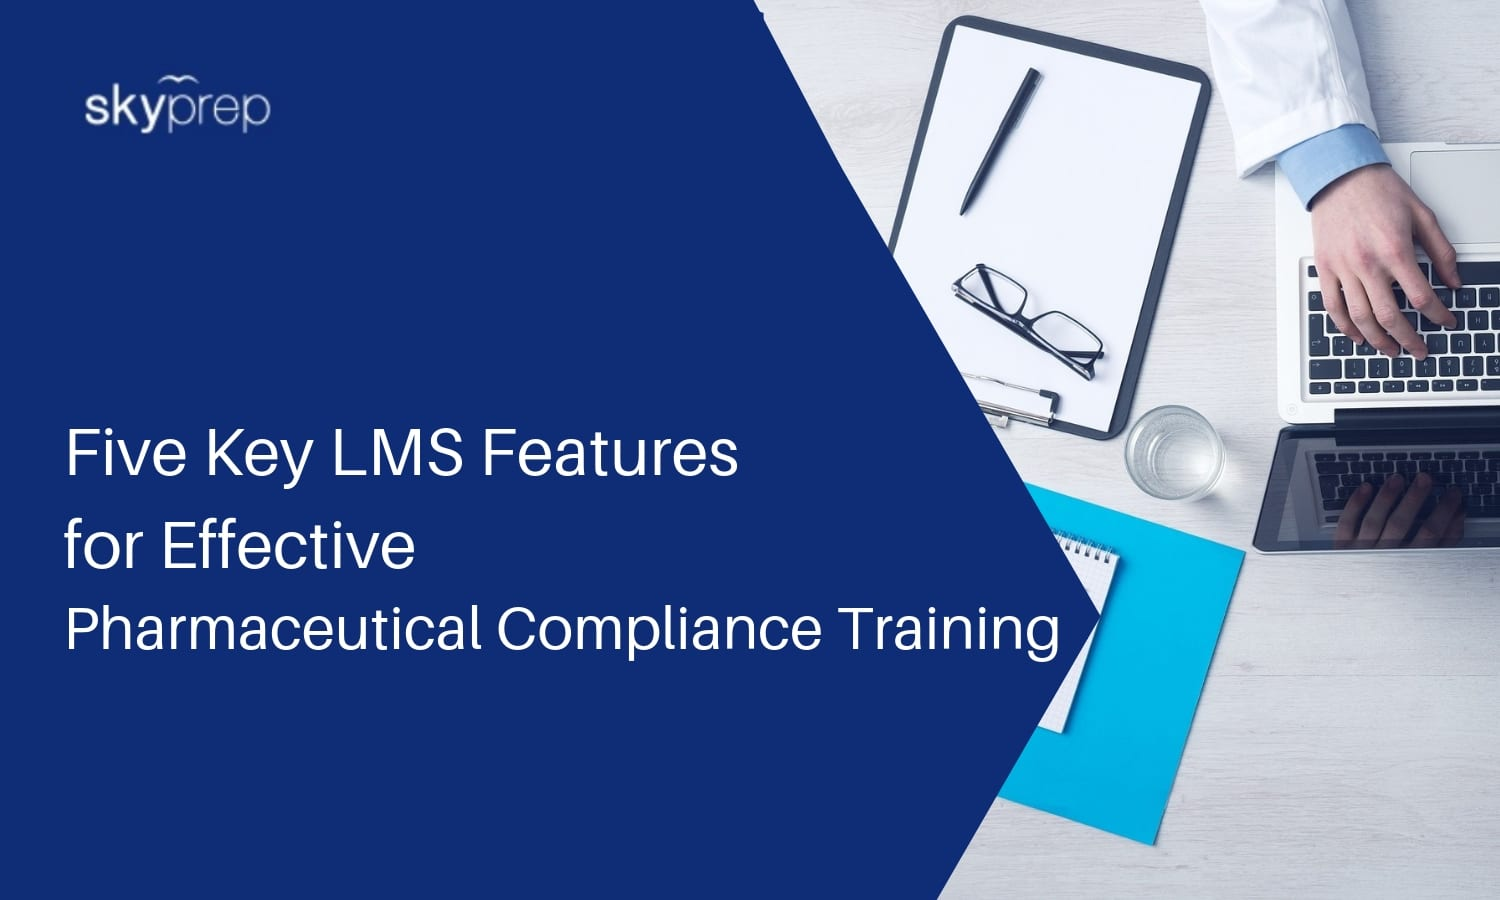 pharmaceutical compliance training software